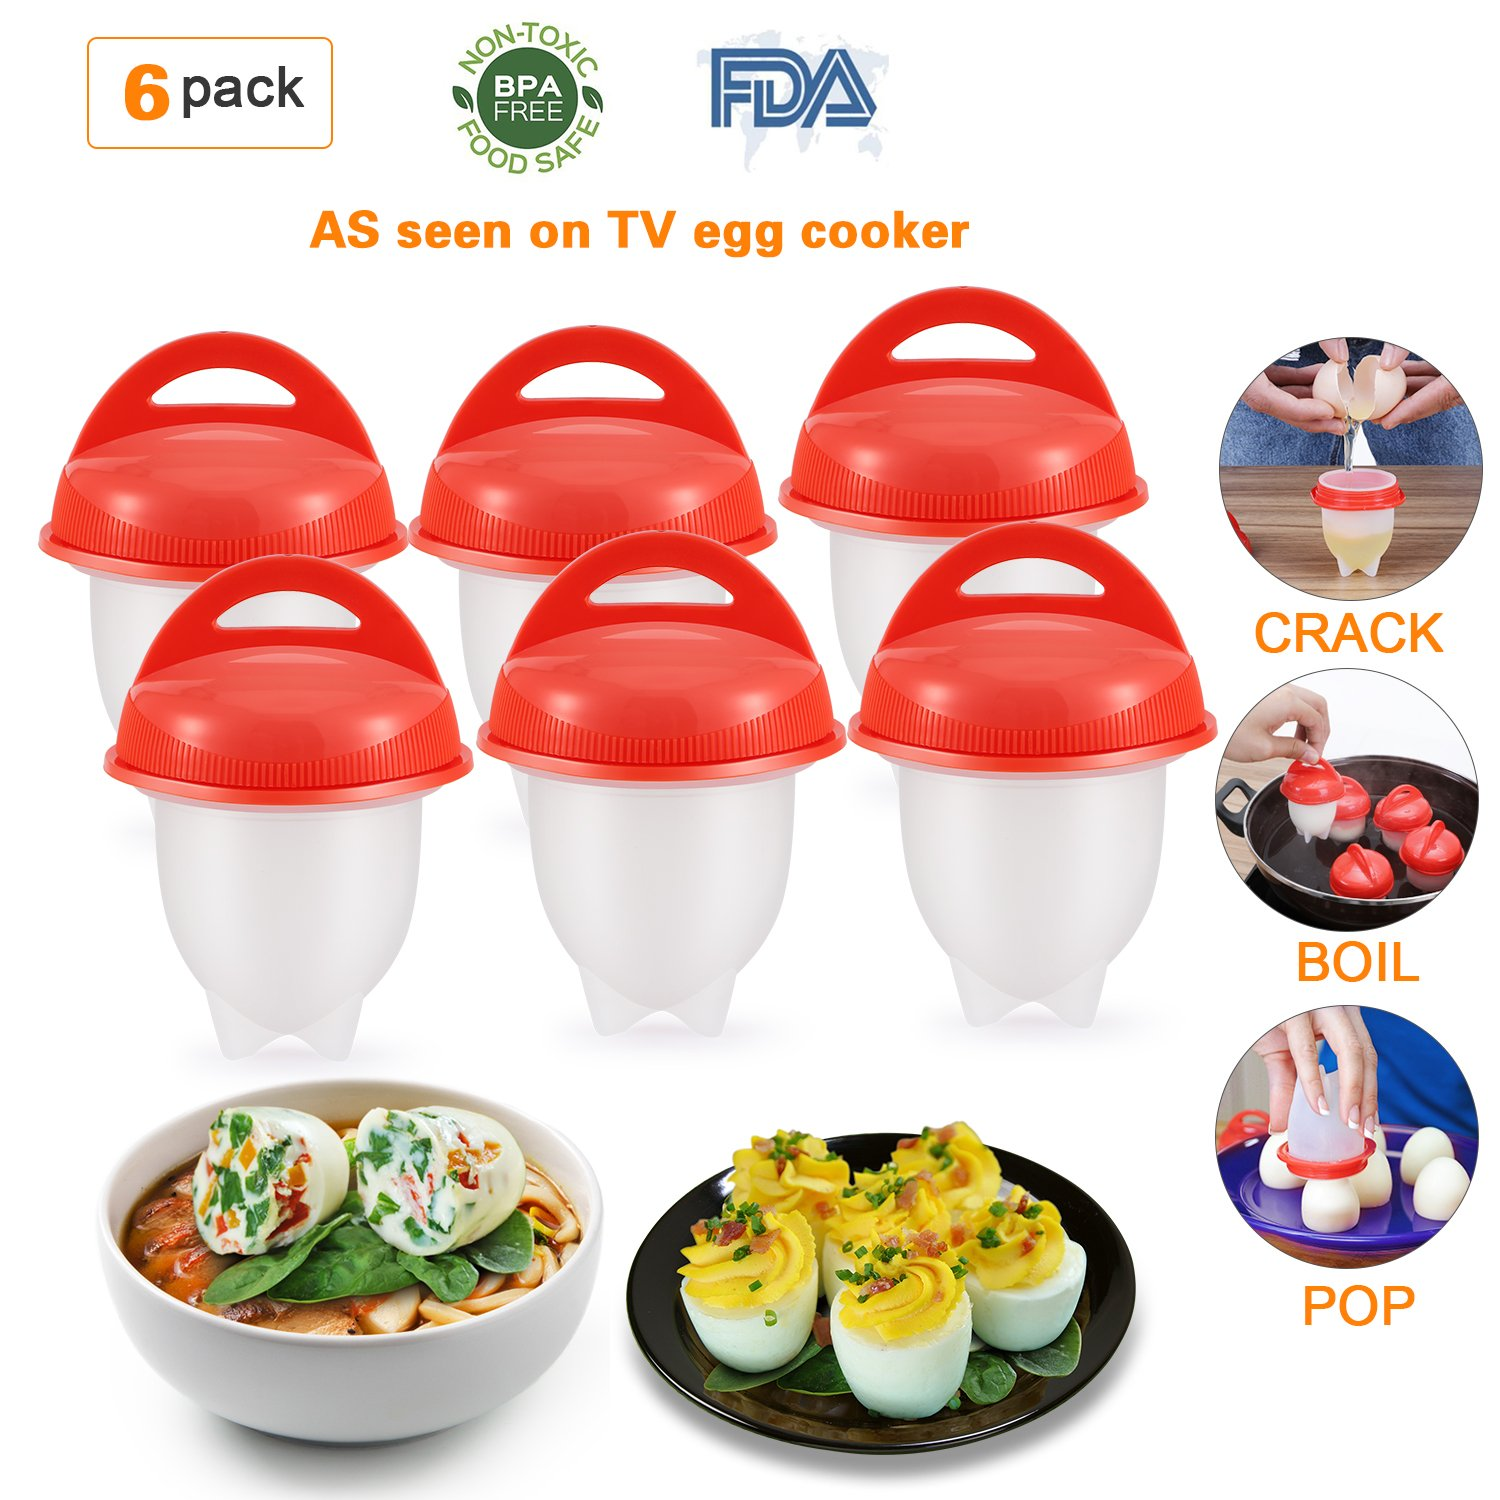 Silicone Egg Cooker Poaching Cup 6 Packs, Magicfly Hard Boiled Egg Maker Poucher without Shell Non Stick, BPA Free, As Seen On TV